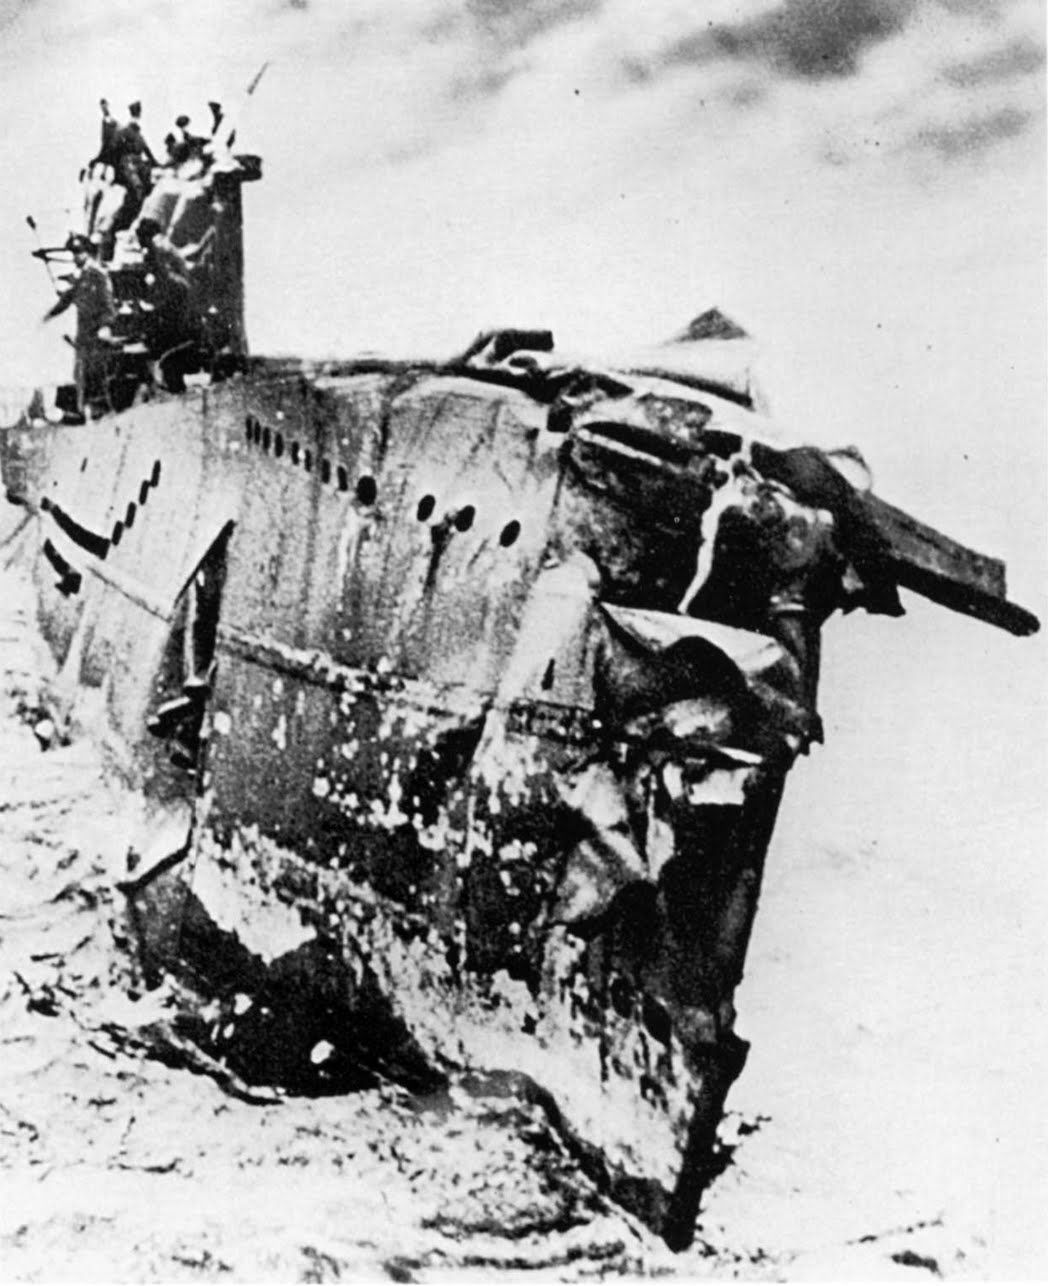 A U Boat Vii Returns To Base With Severe Damage After Beinged With Depth Charges